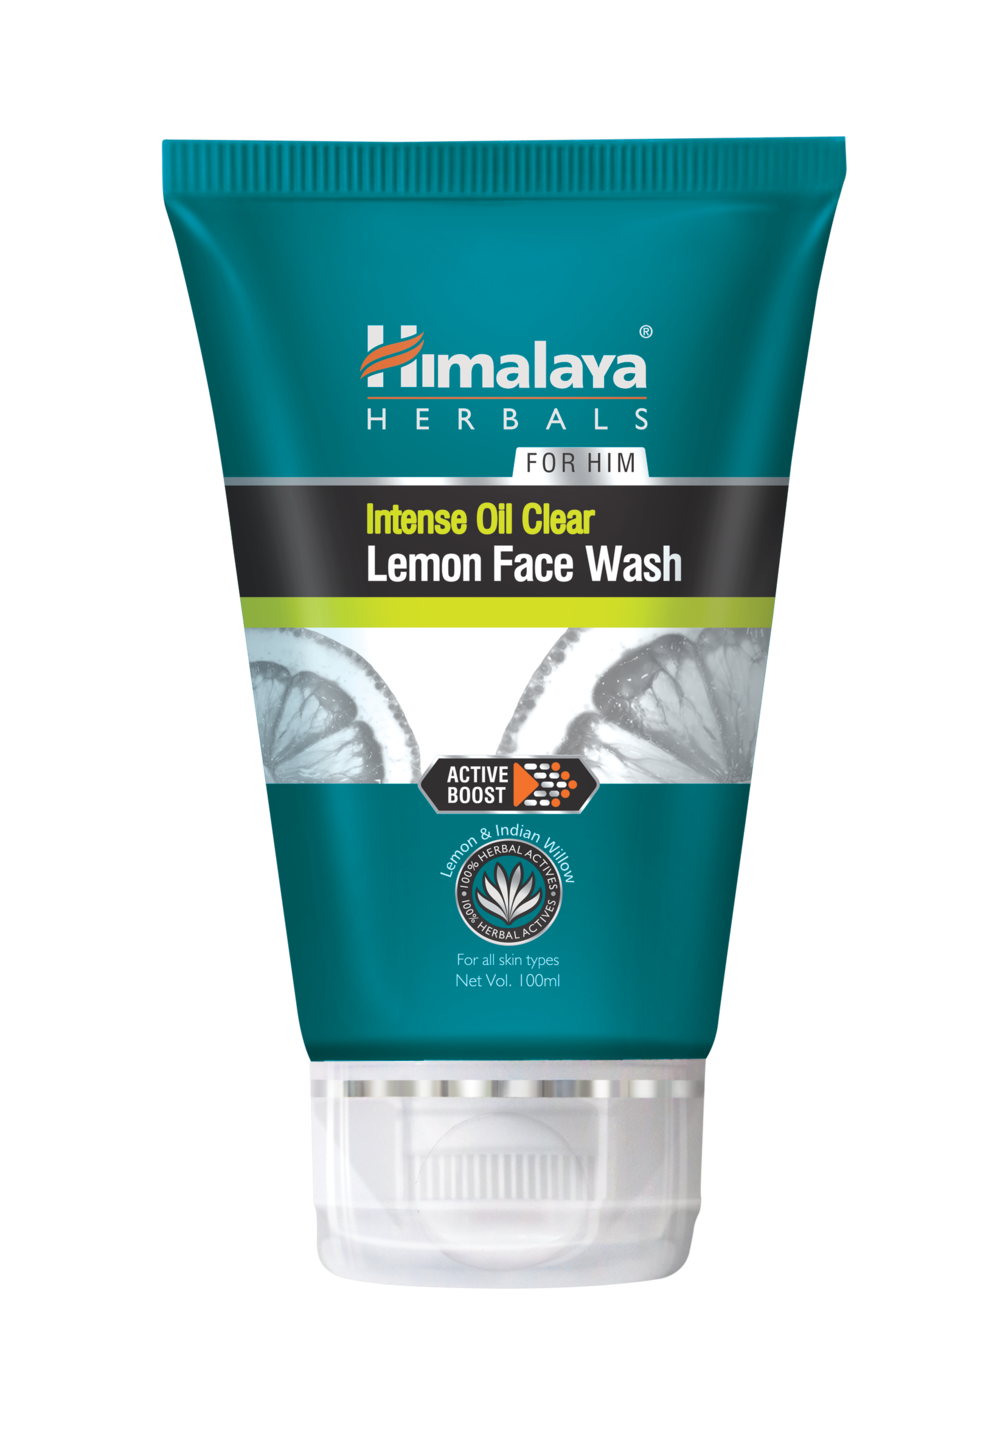 Himalaya_Intense Oil Clear Lemon Face Wash